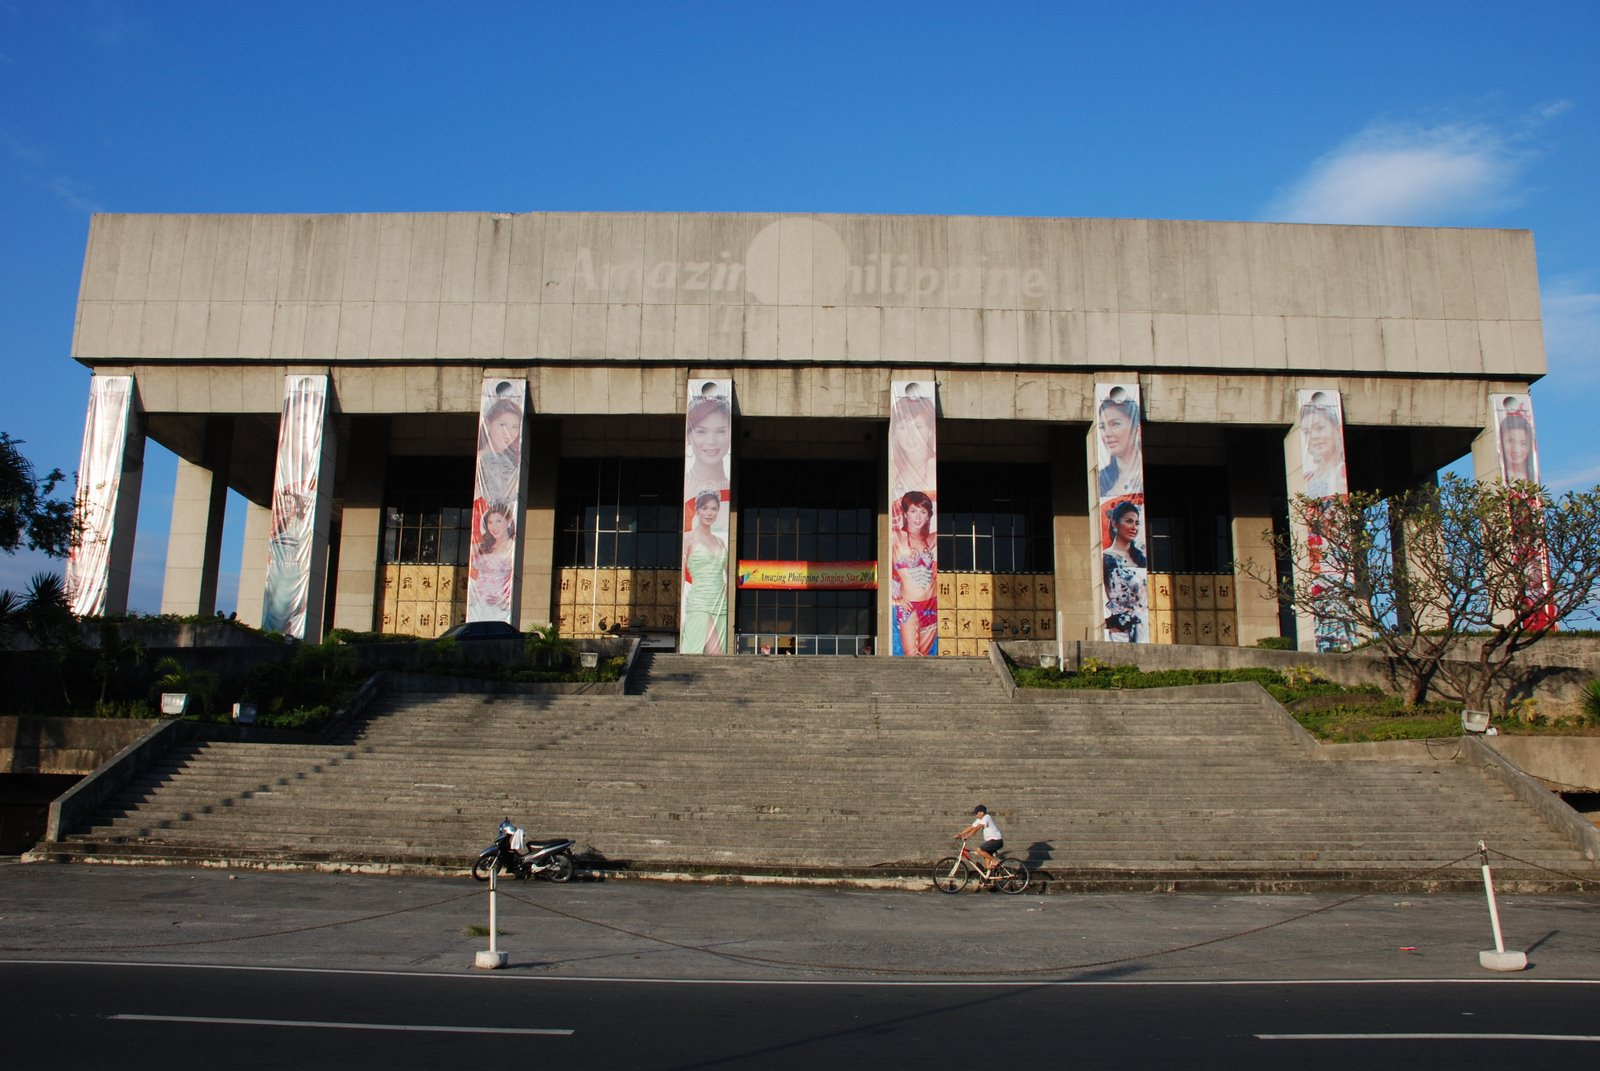 Cultural Center Of The Philippines Public Building In Metro Manila Thousand Wonders